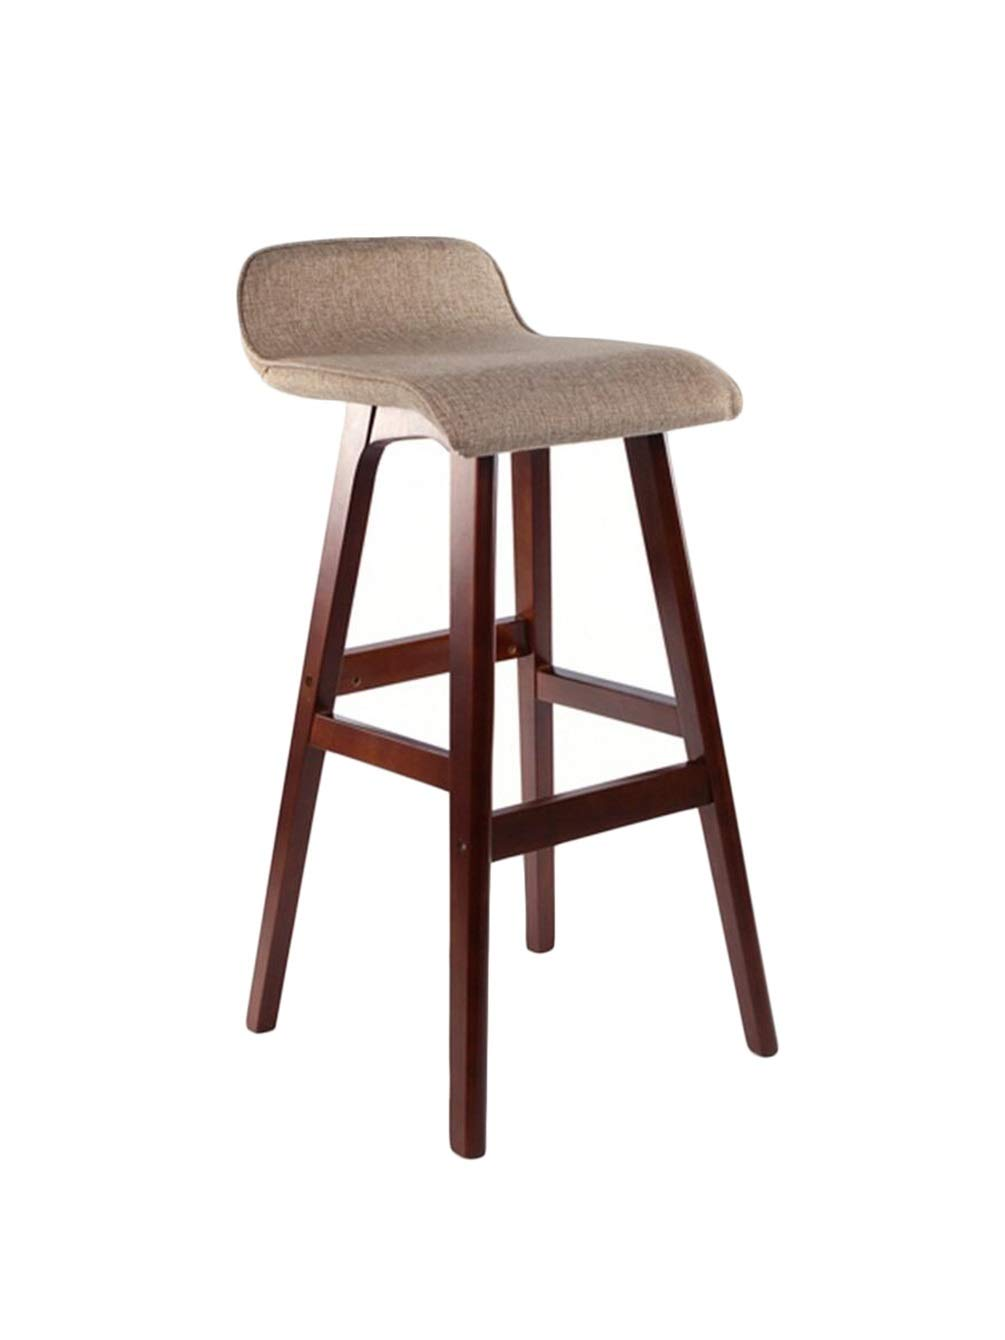 High BARSTOOLRI Bar Stool with Backrest, Solid Wood Frame Non-Slip Ergonomic Removable Cushion Cover Kitchen High Chair (Size   High)